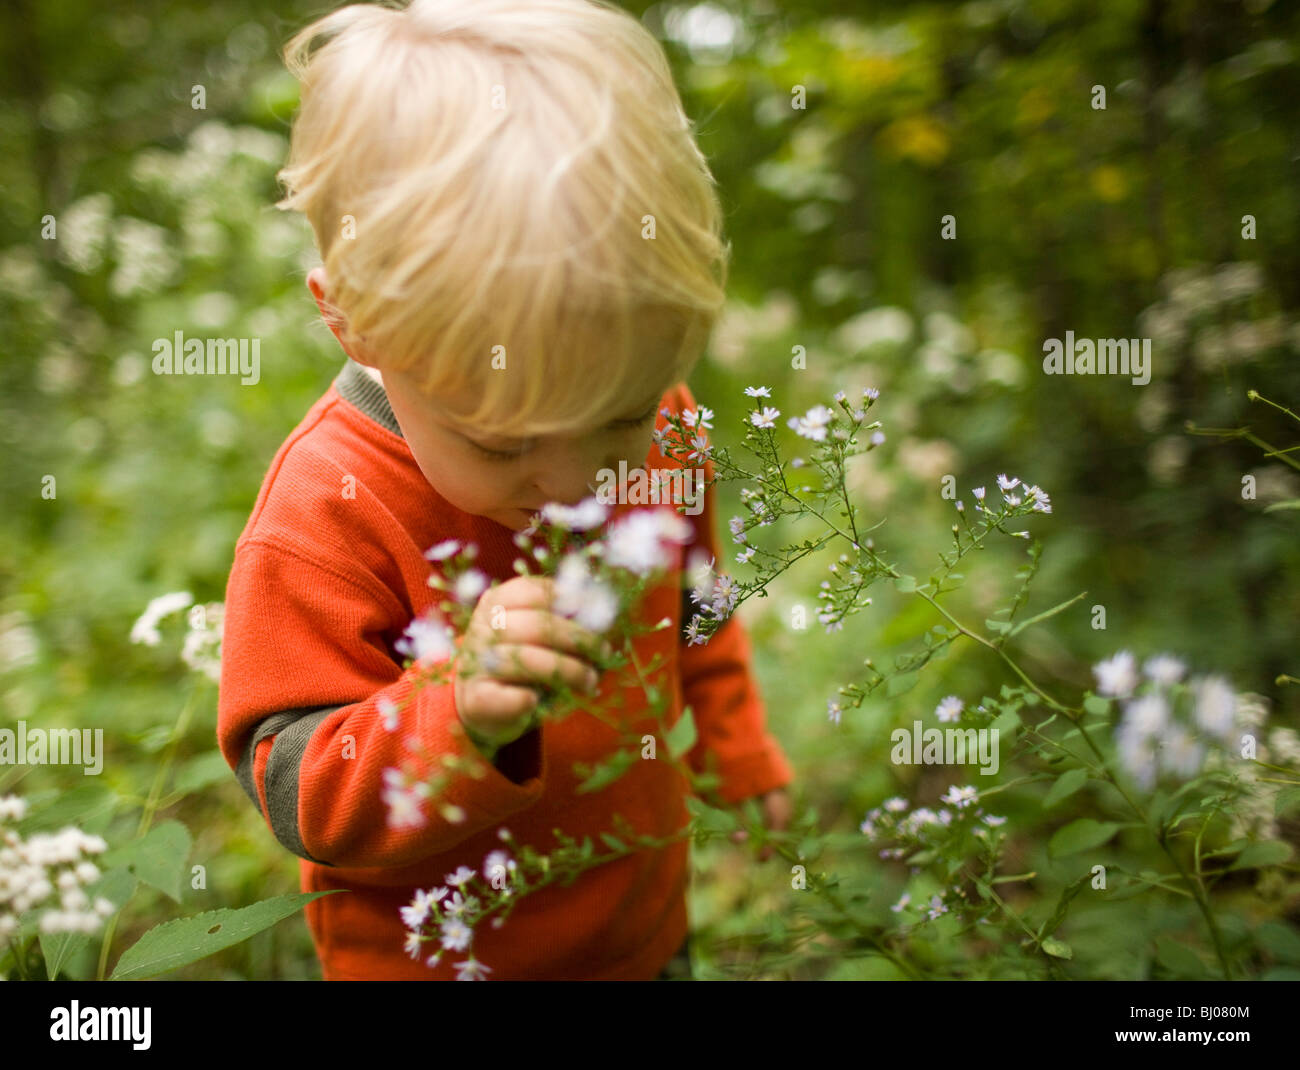 Young boy smelling wildflowers in the woods. - Stock Image